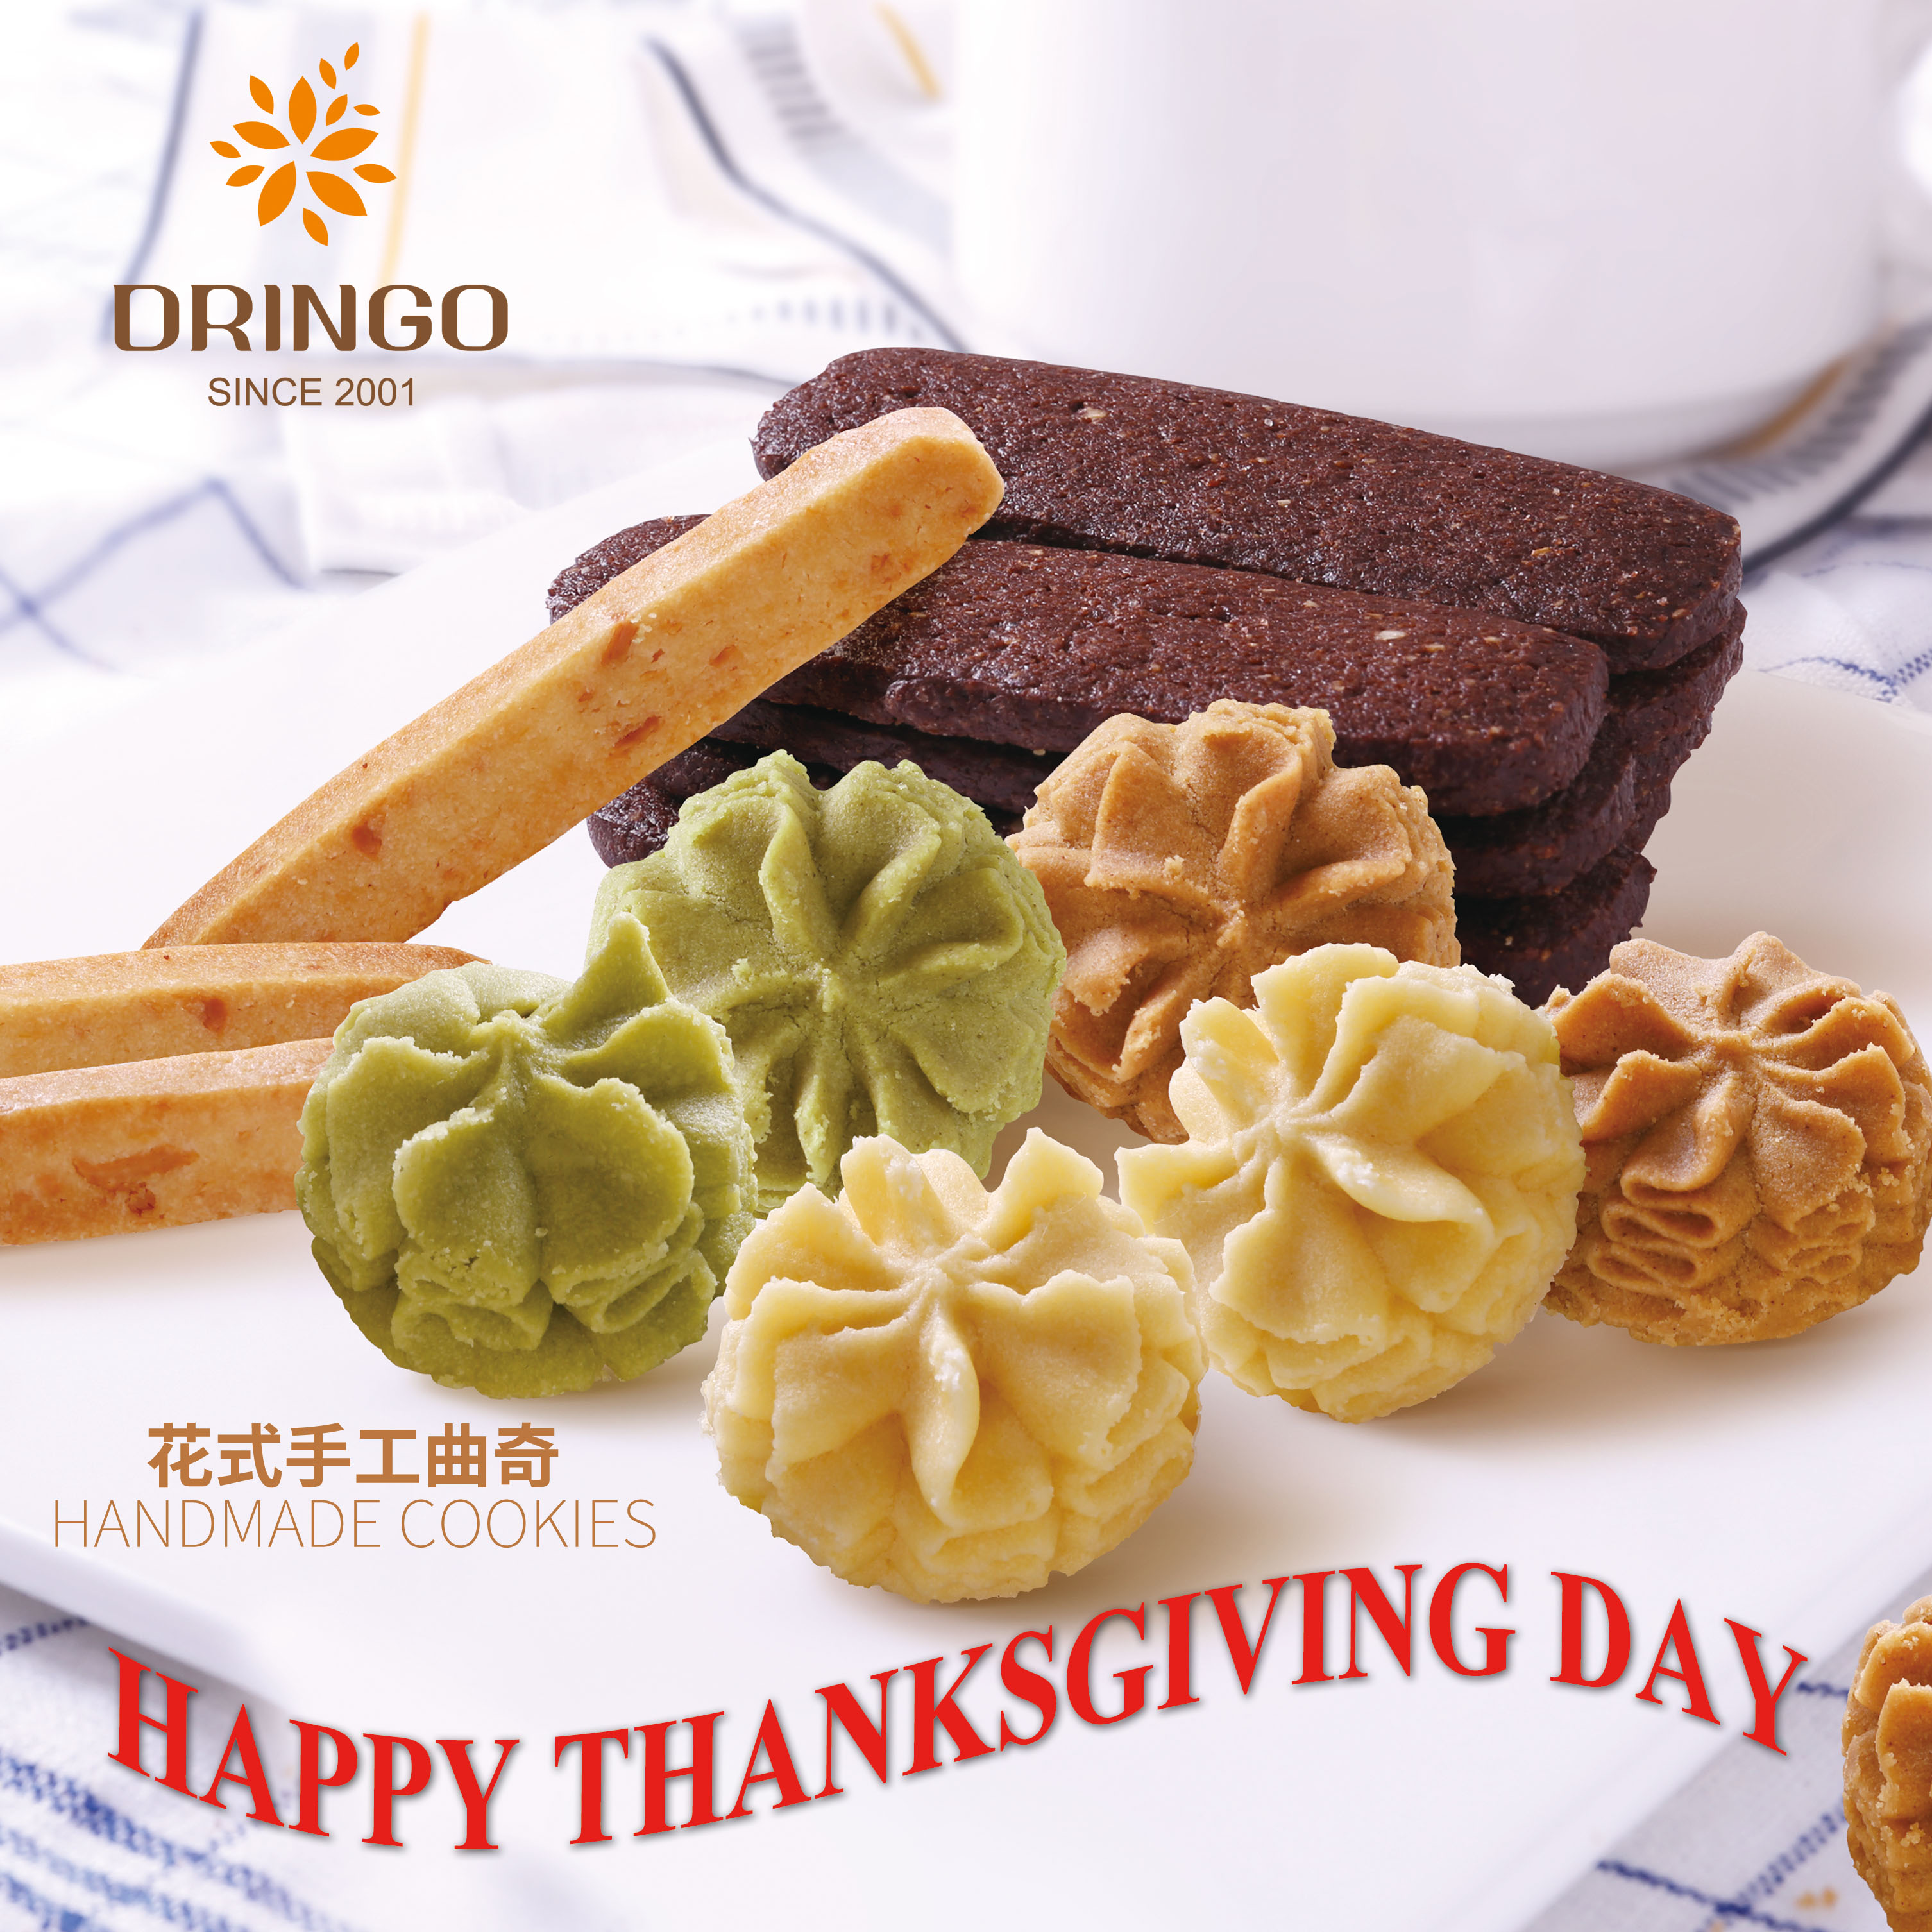 Thanksgiving Day Dringo Food Cookies and Gummy candies